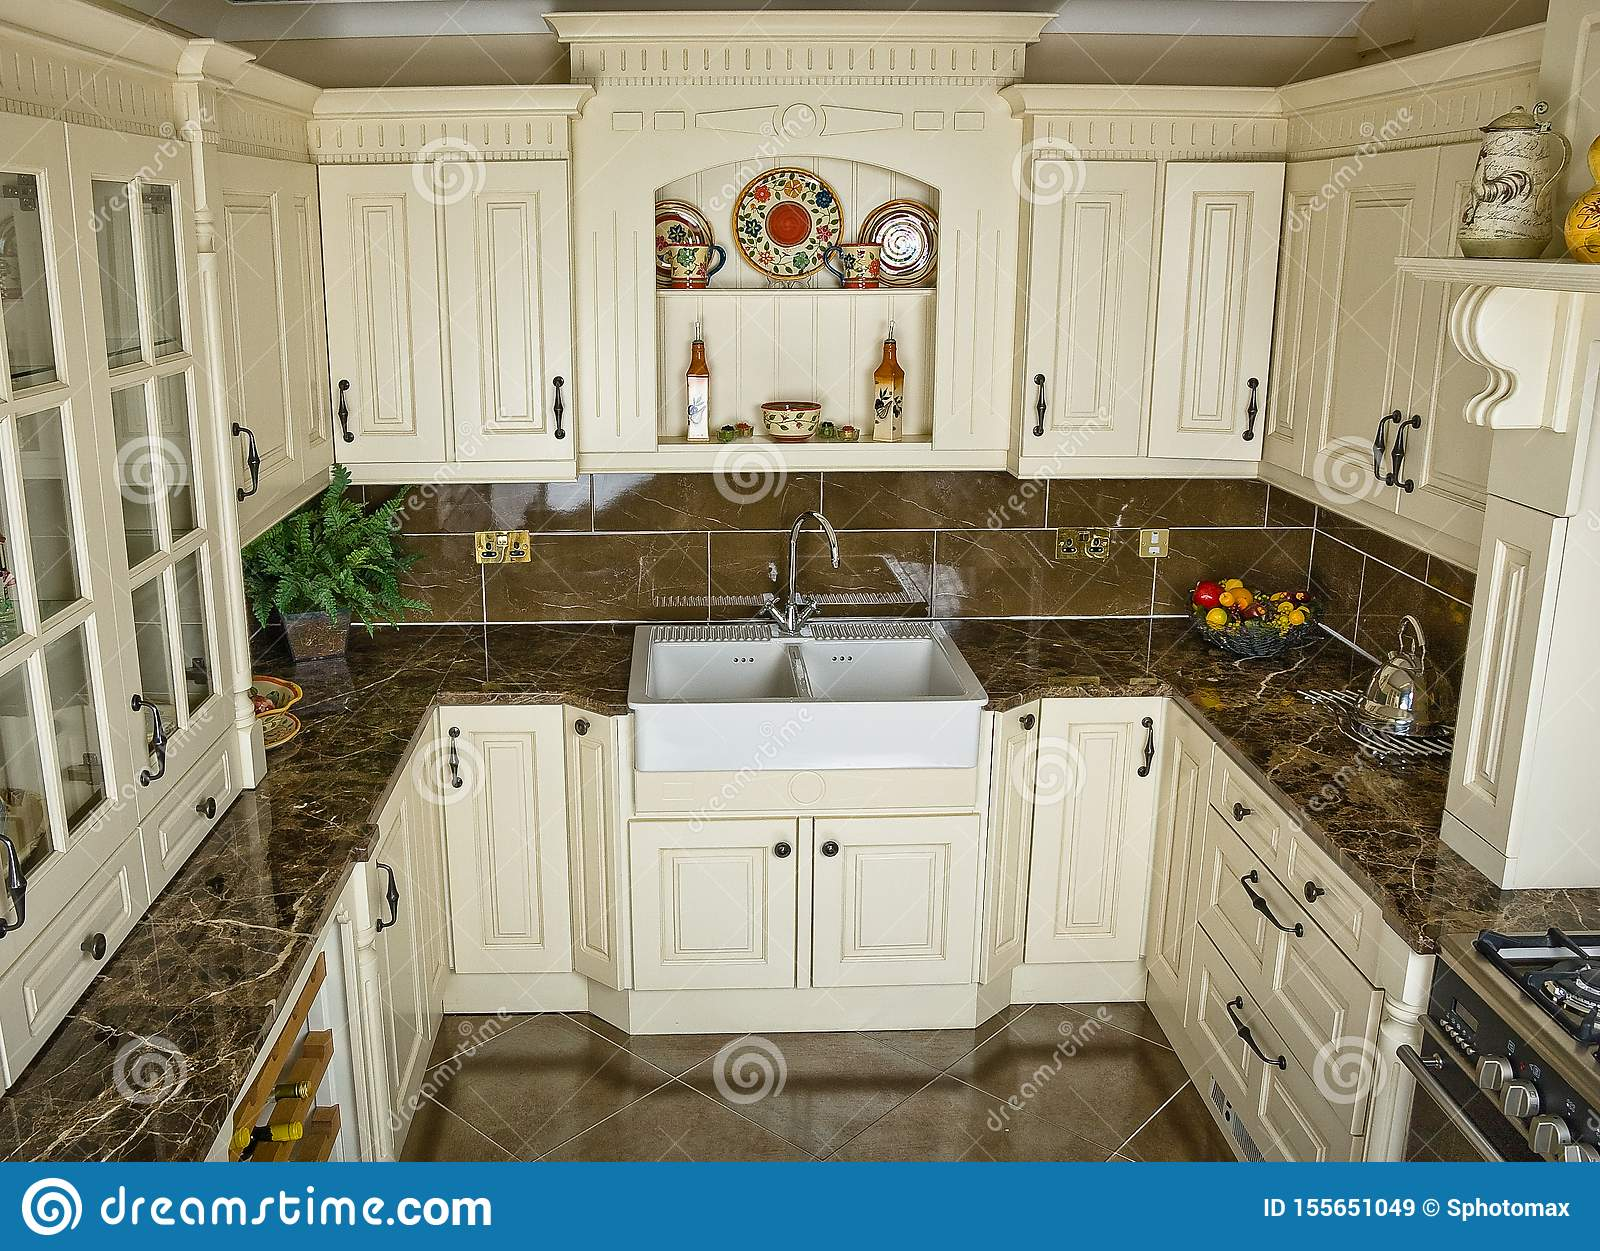 Kitchen with appliances and a beautiful interior designe